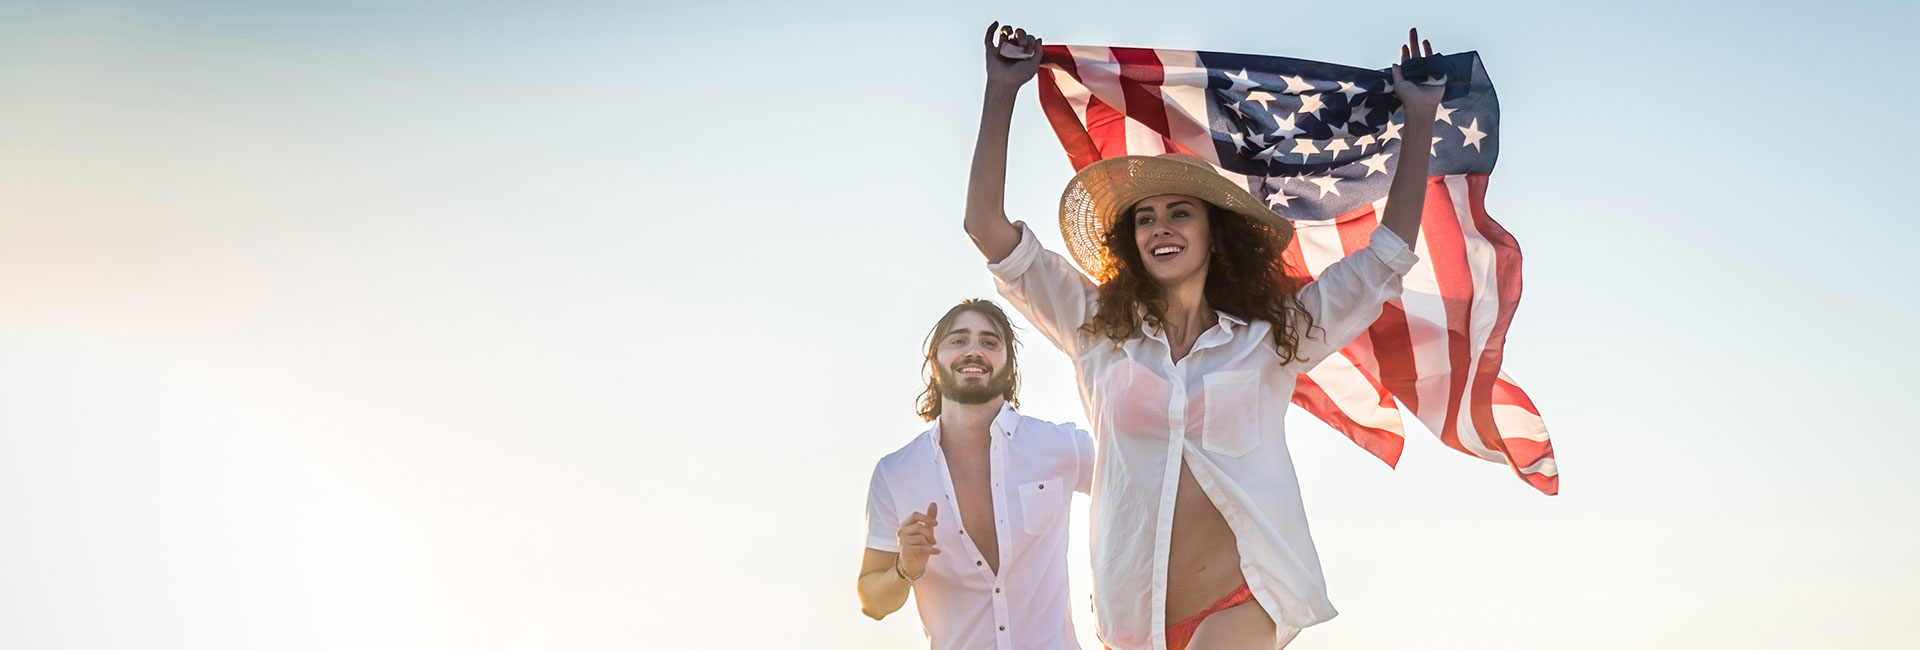 4th of july weekend events in cabo